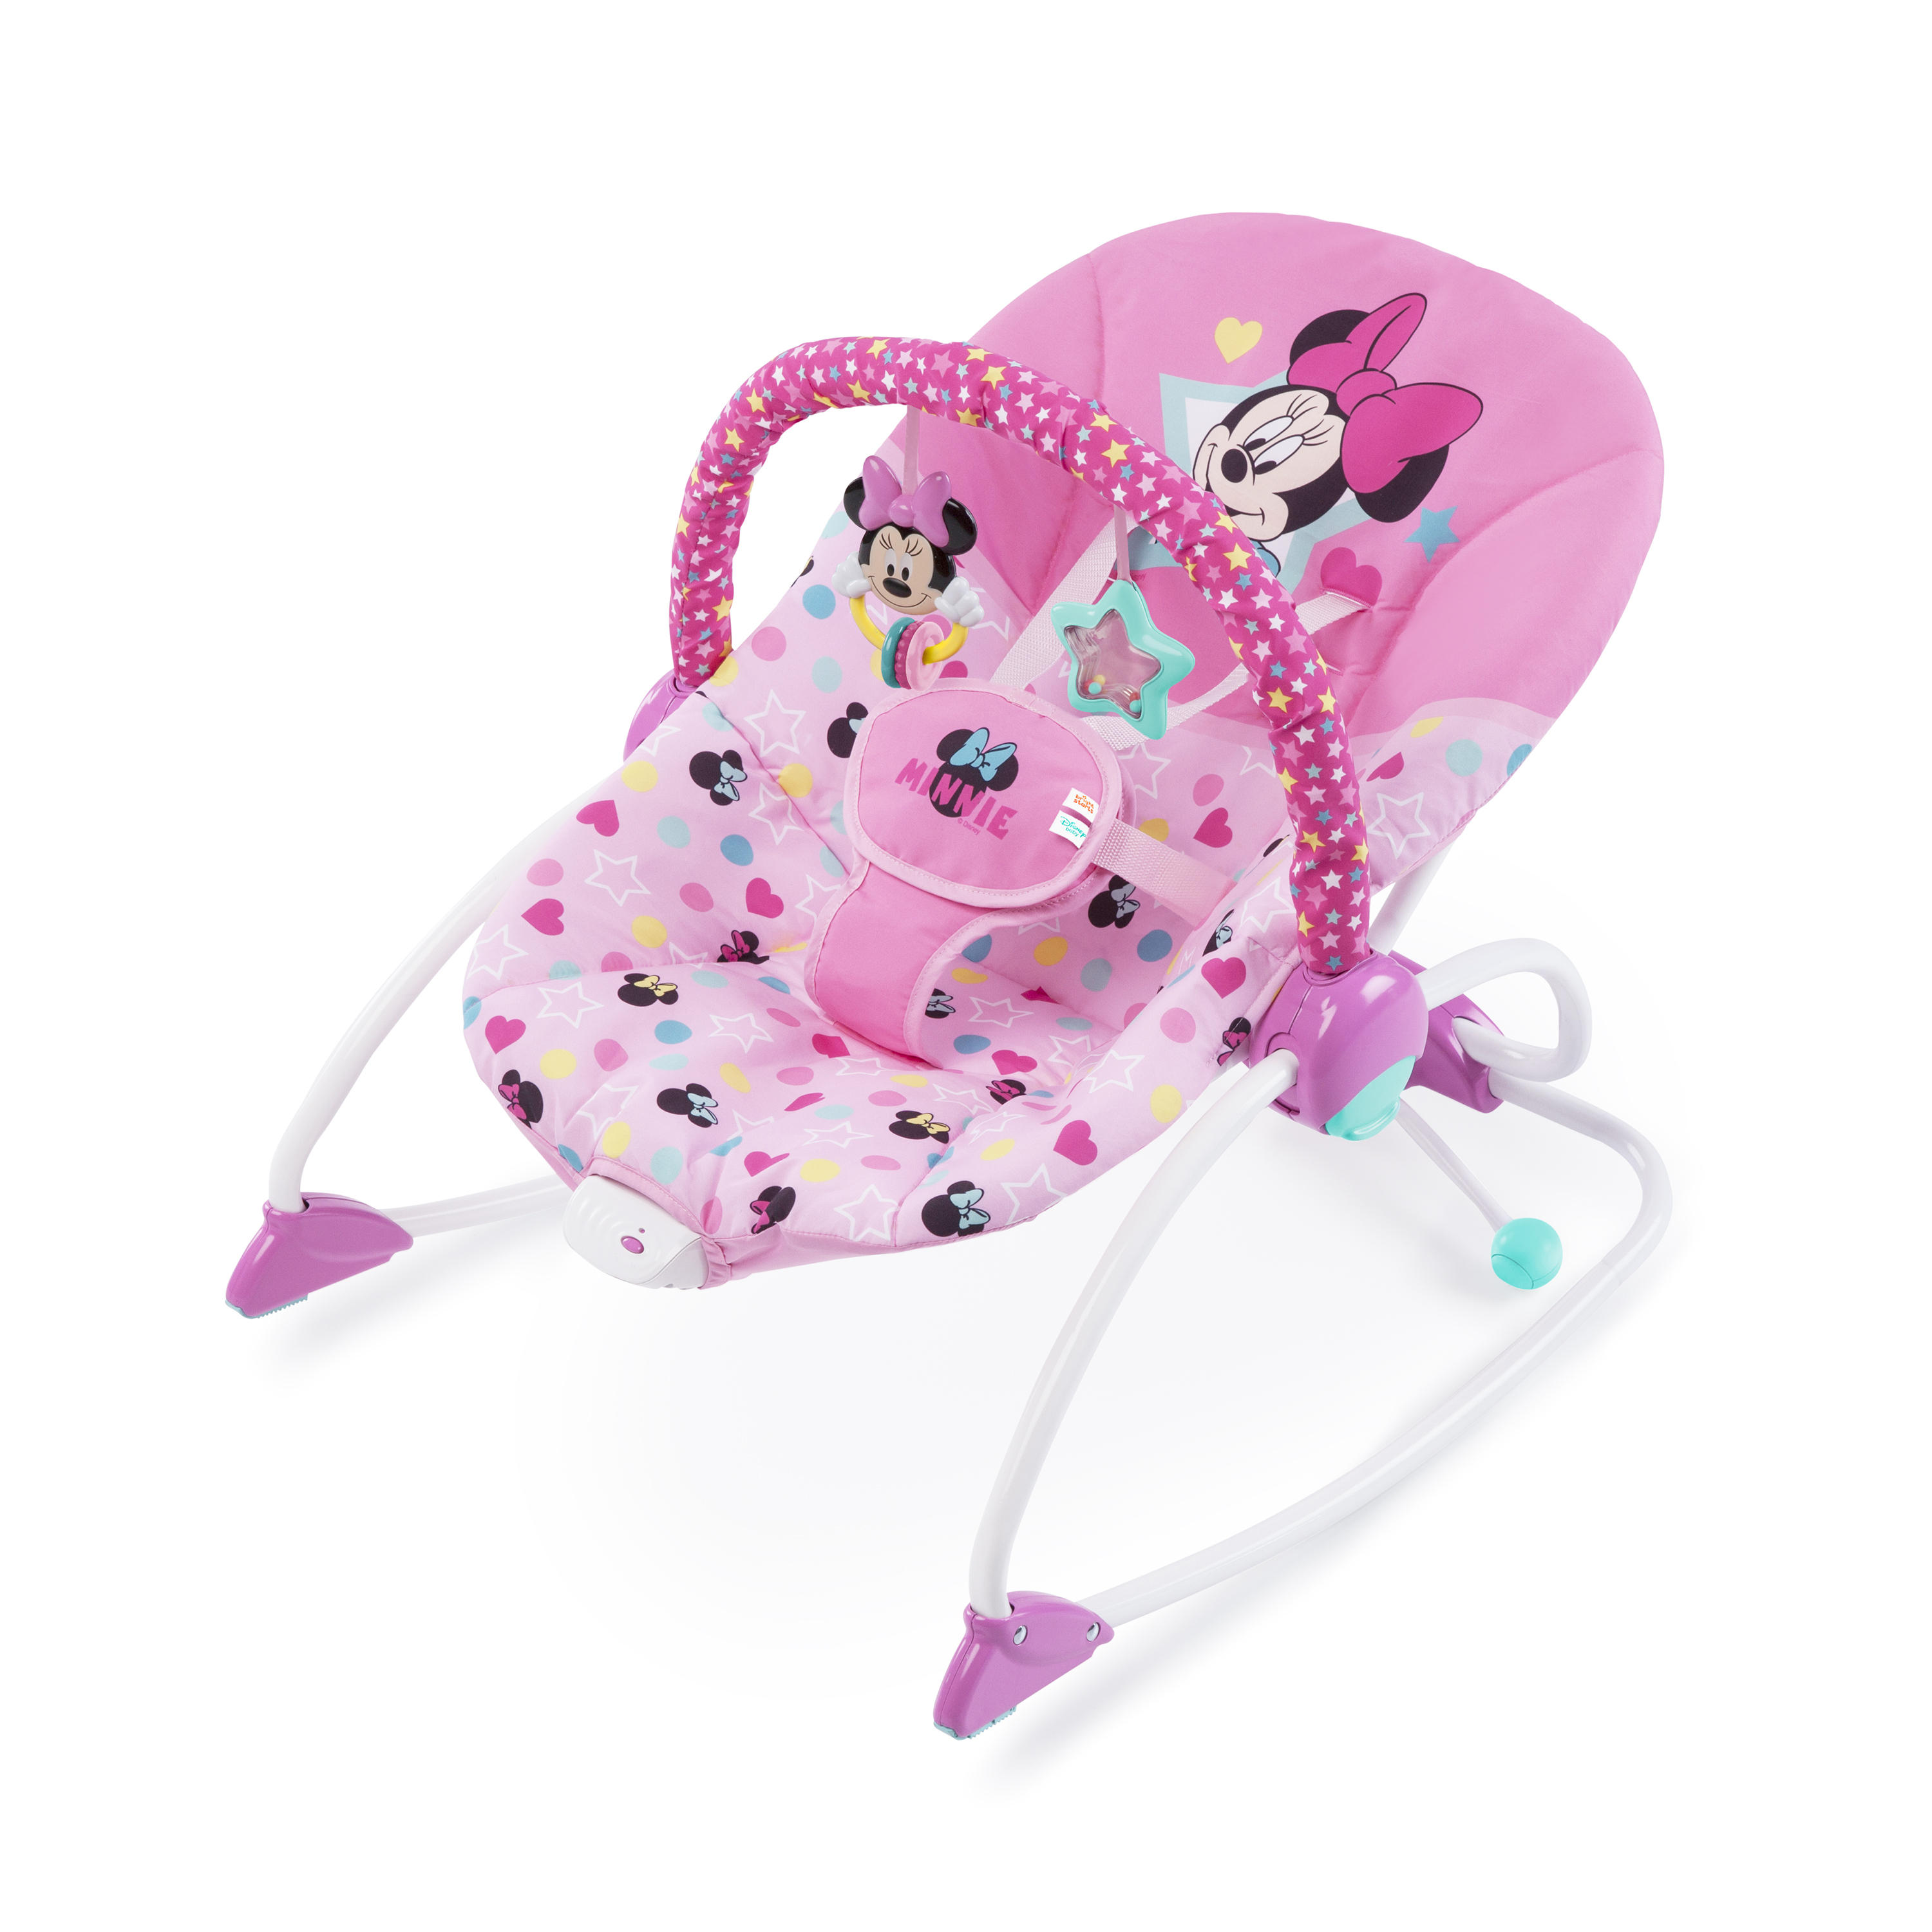 Disney Baby Minnie Mouse Stars & Smiles Infant To Toddler Rocker